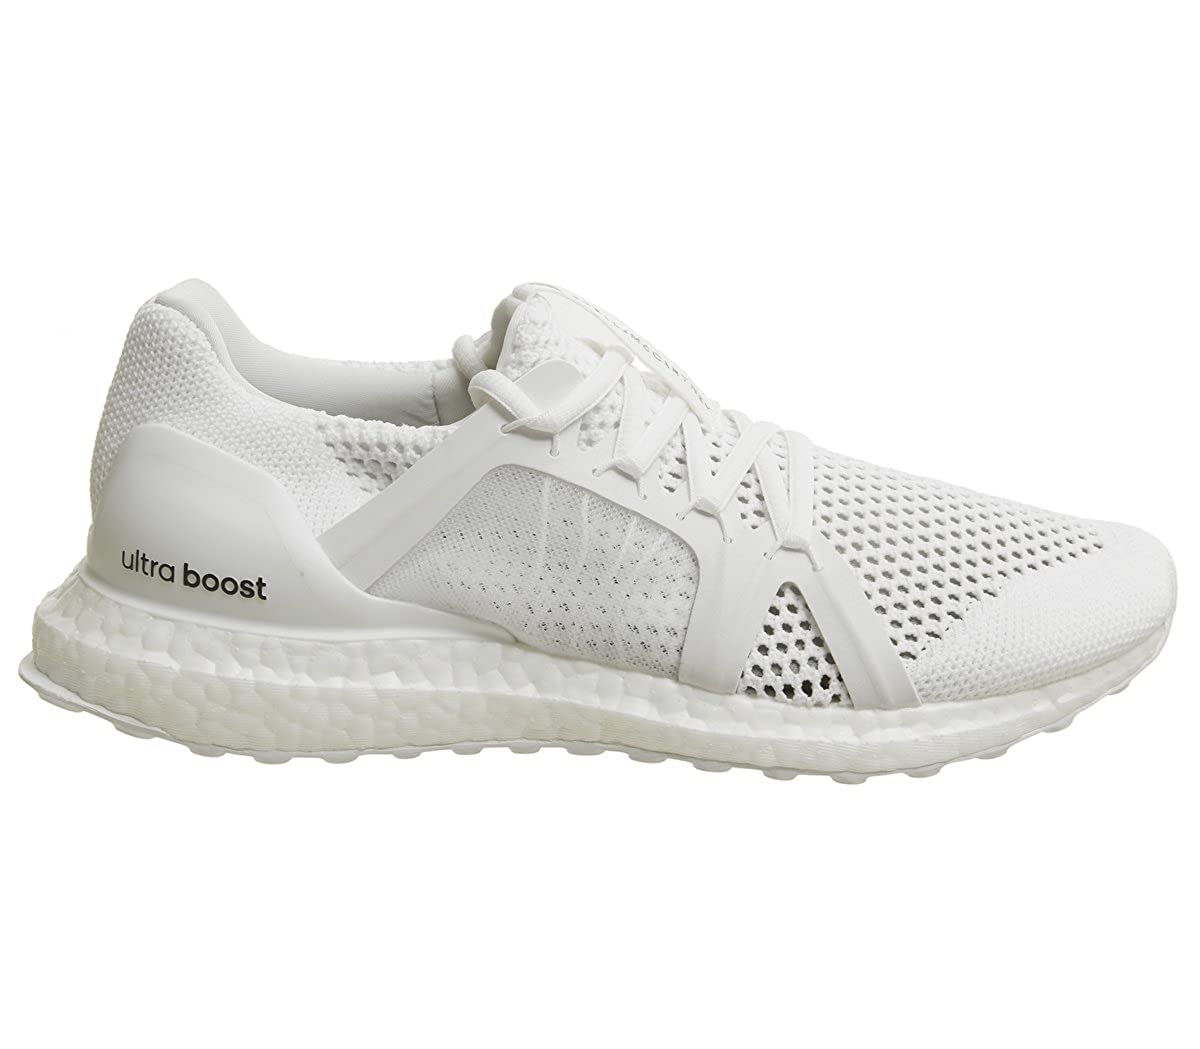 Stella McCartney Ultra Boost Damen Turnschuhe Weiß